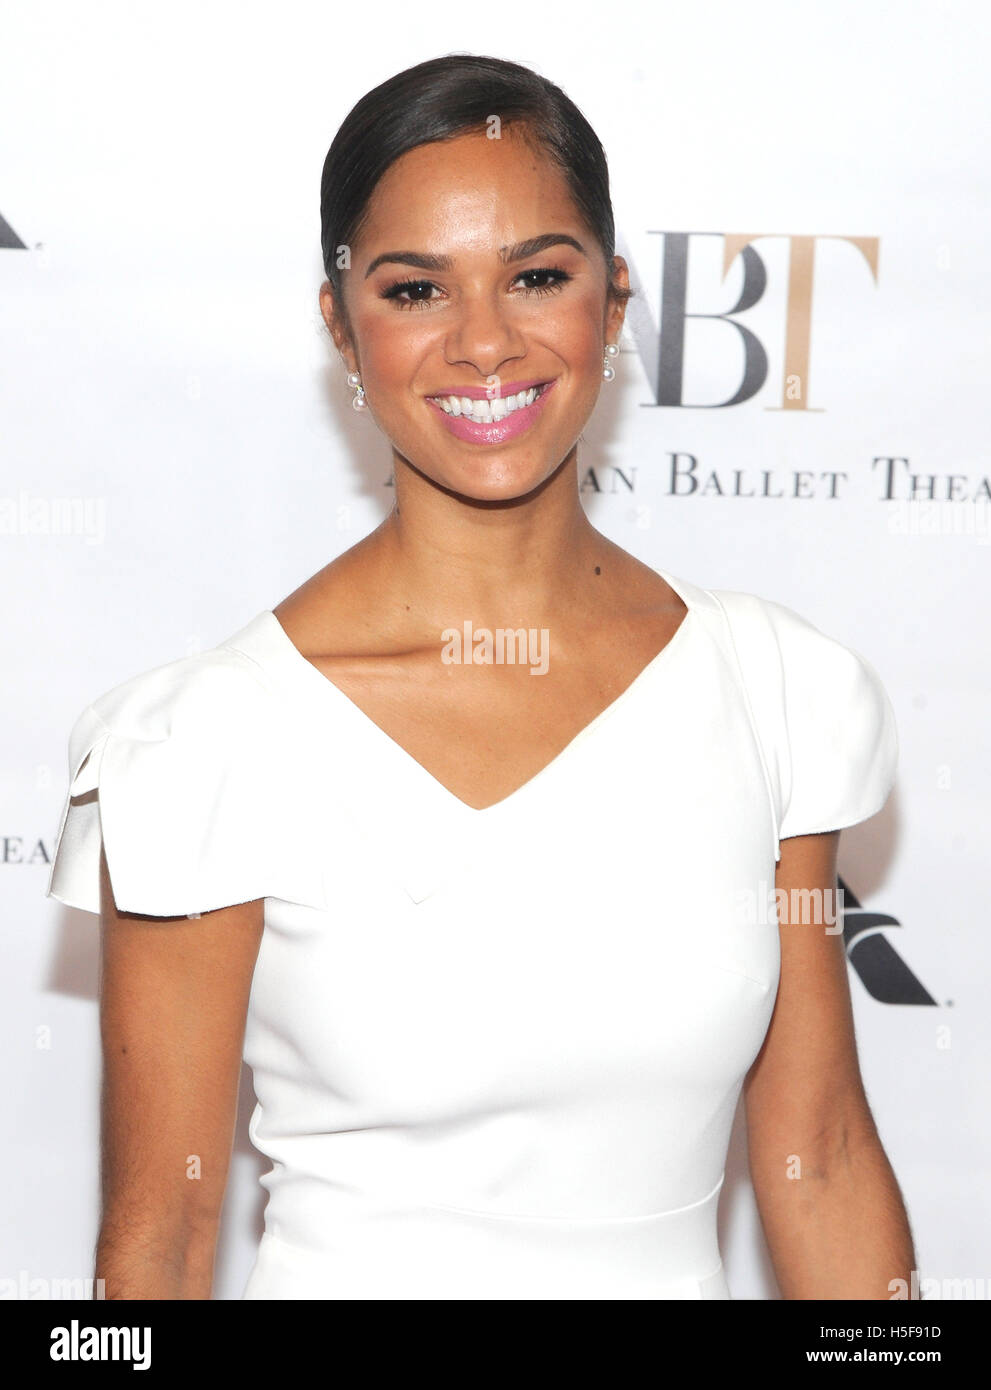 New York, NY, USA. 20th Oct, 2016. Misty Copeland attends the American Ballet Theater 2016 Fall Gala on October - Stock Image